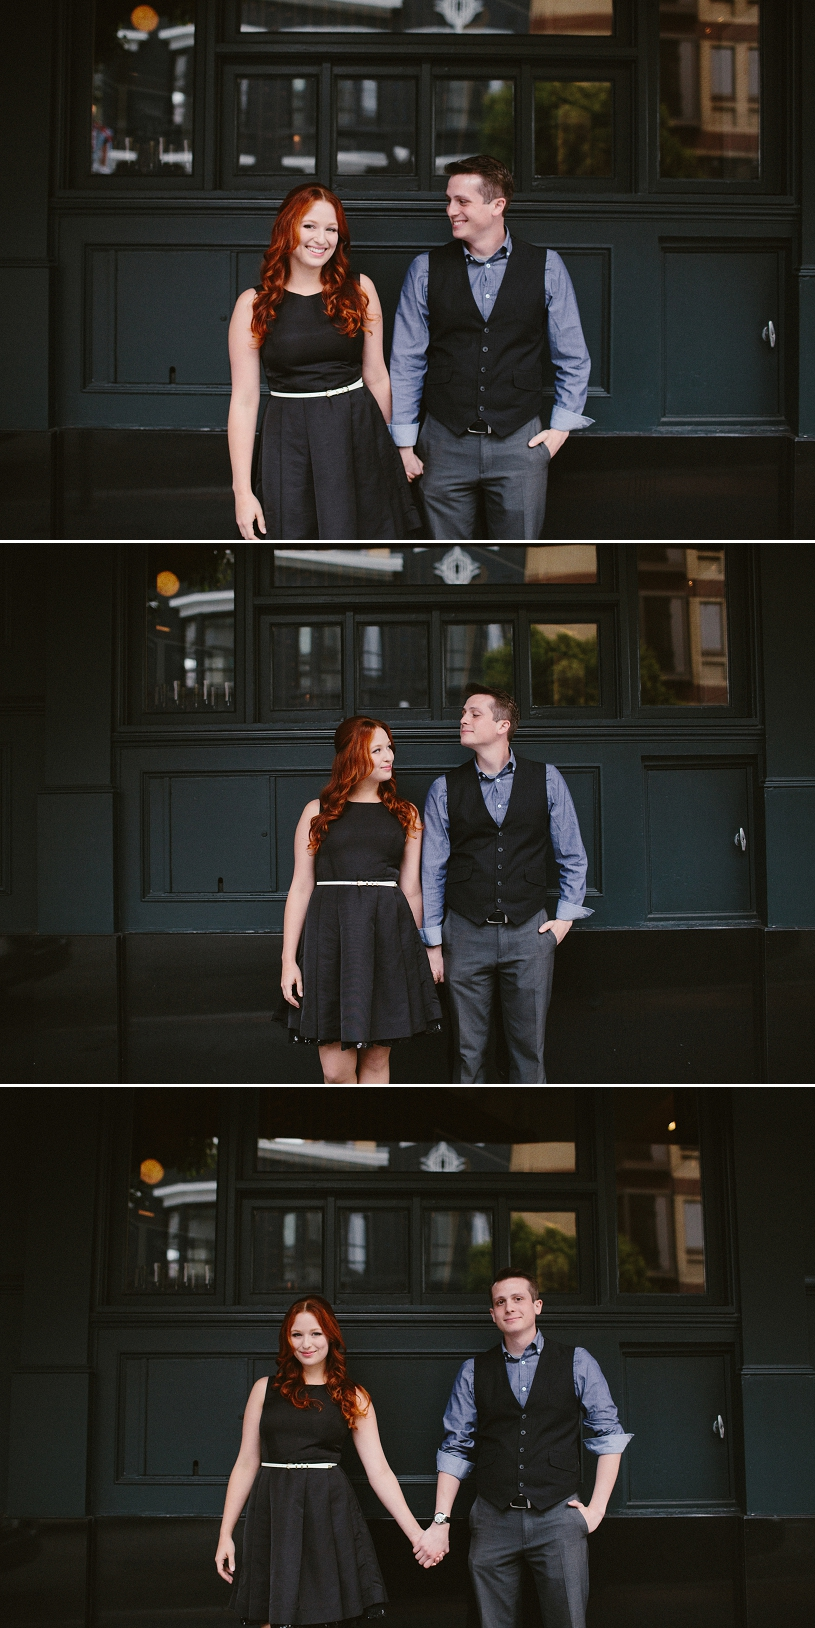 Adorable chic engagement in front of a french cafe